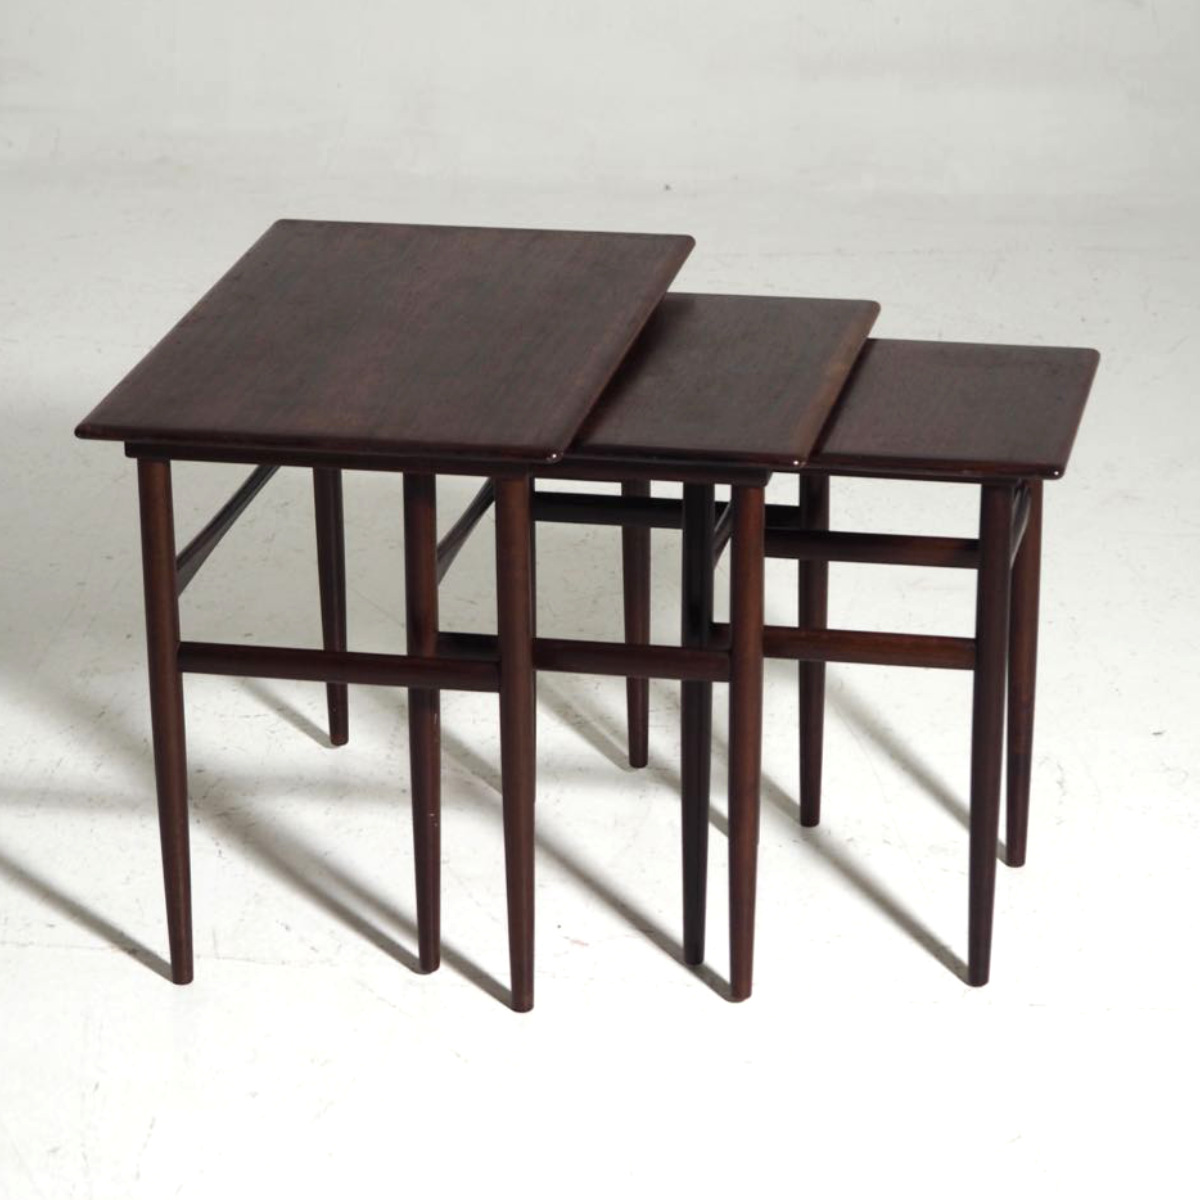 Nest of tables in rosewood, circa 1960 - € 600